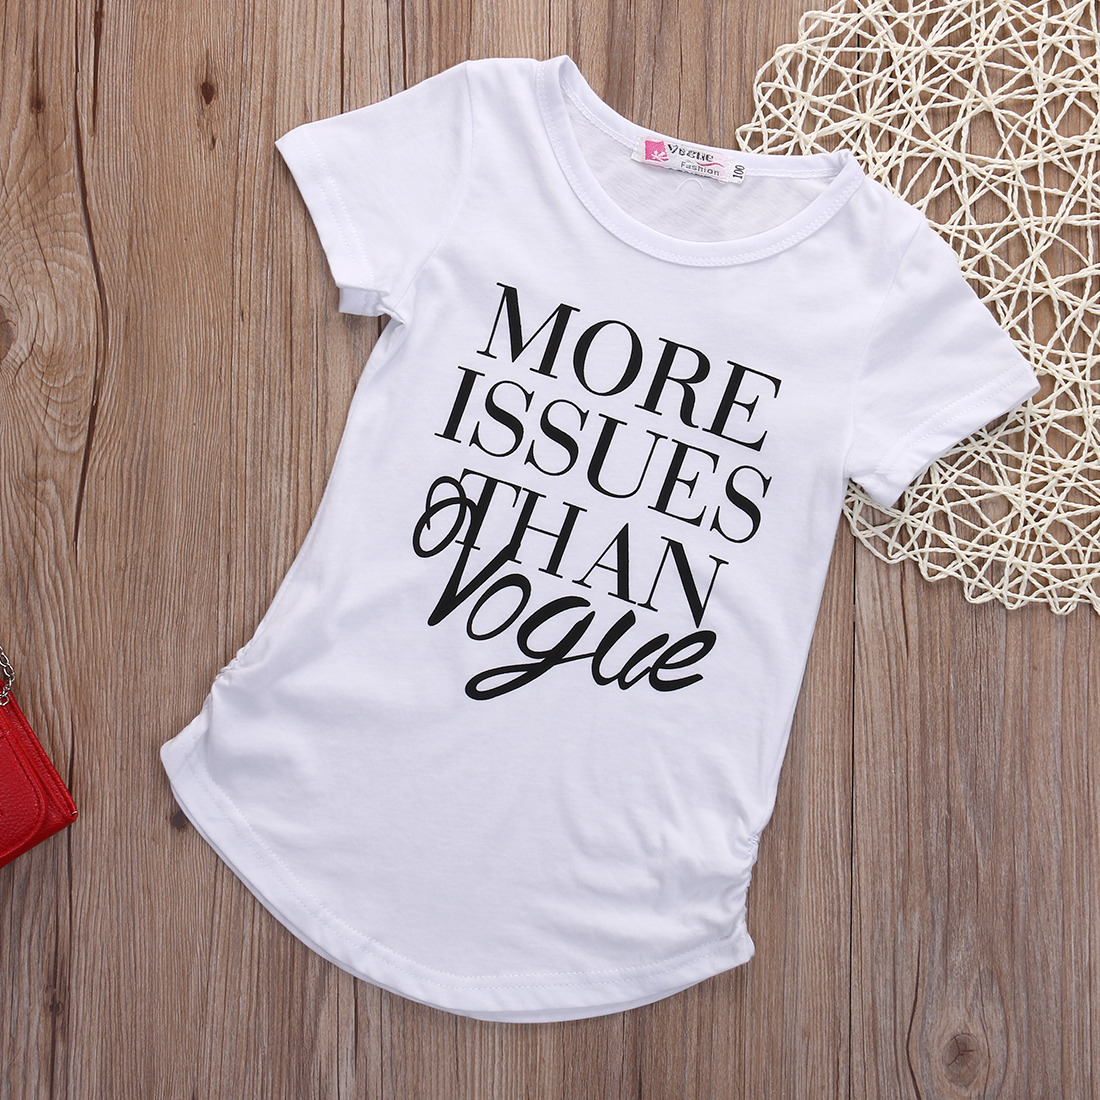 3f3de134935 Details about 2016 New Kids Baby Girls Summer Fashion Cotton Short sleeve T- shirt Tops Clothes